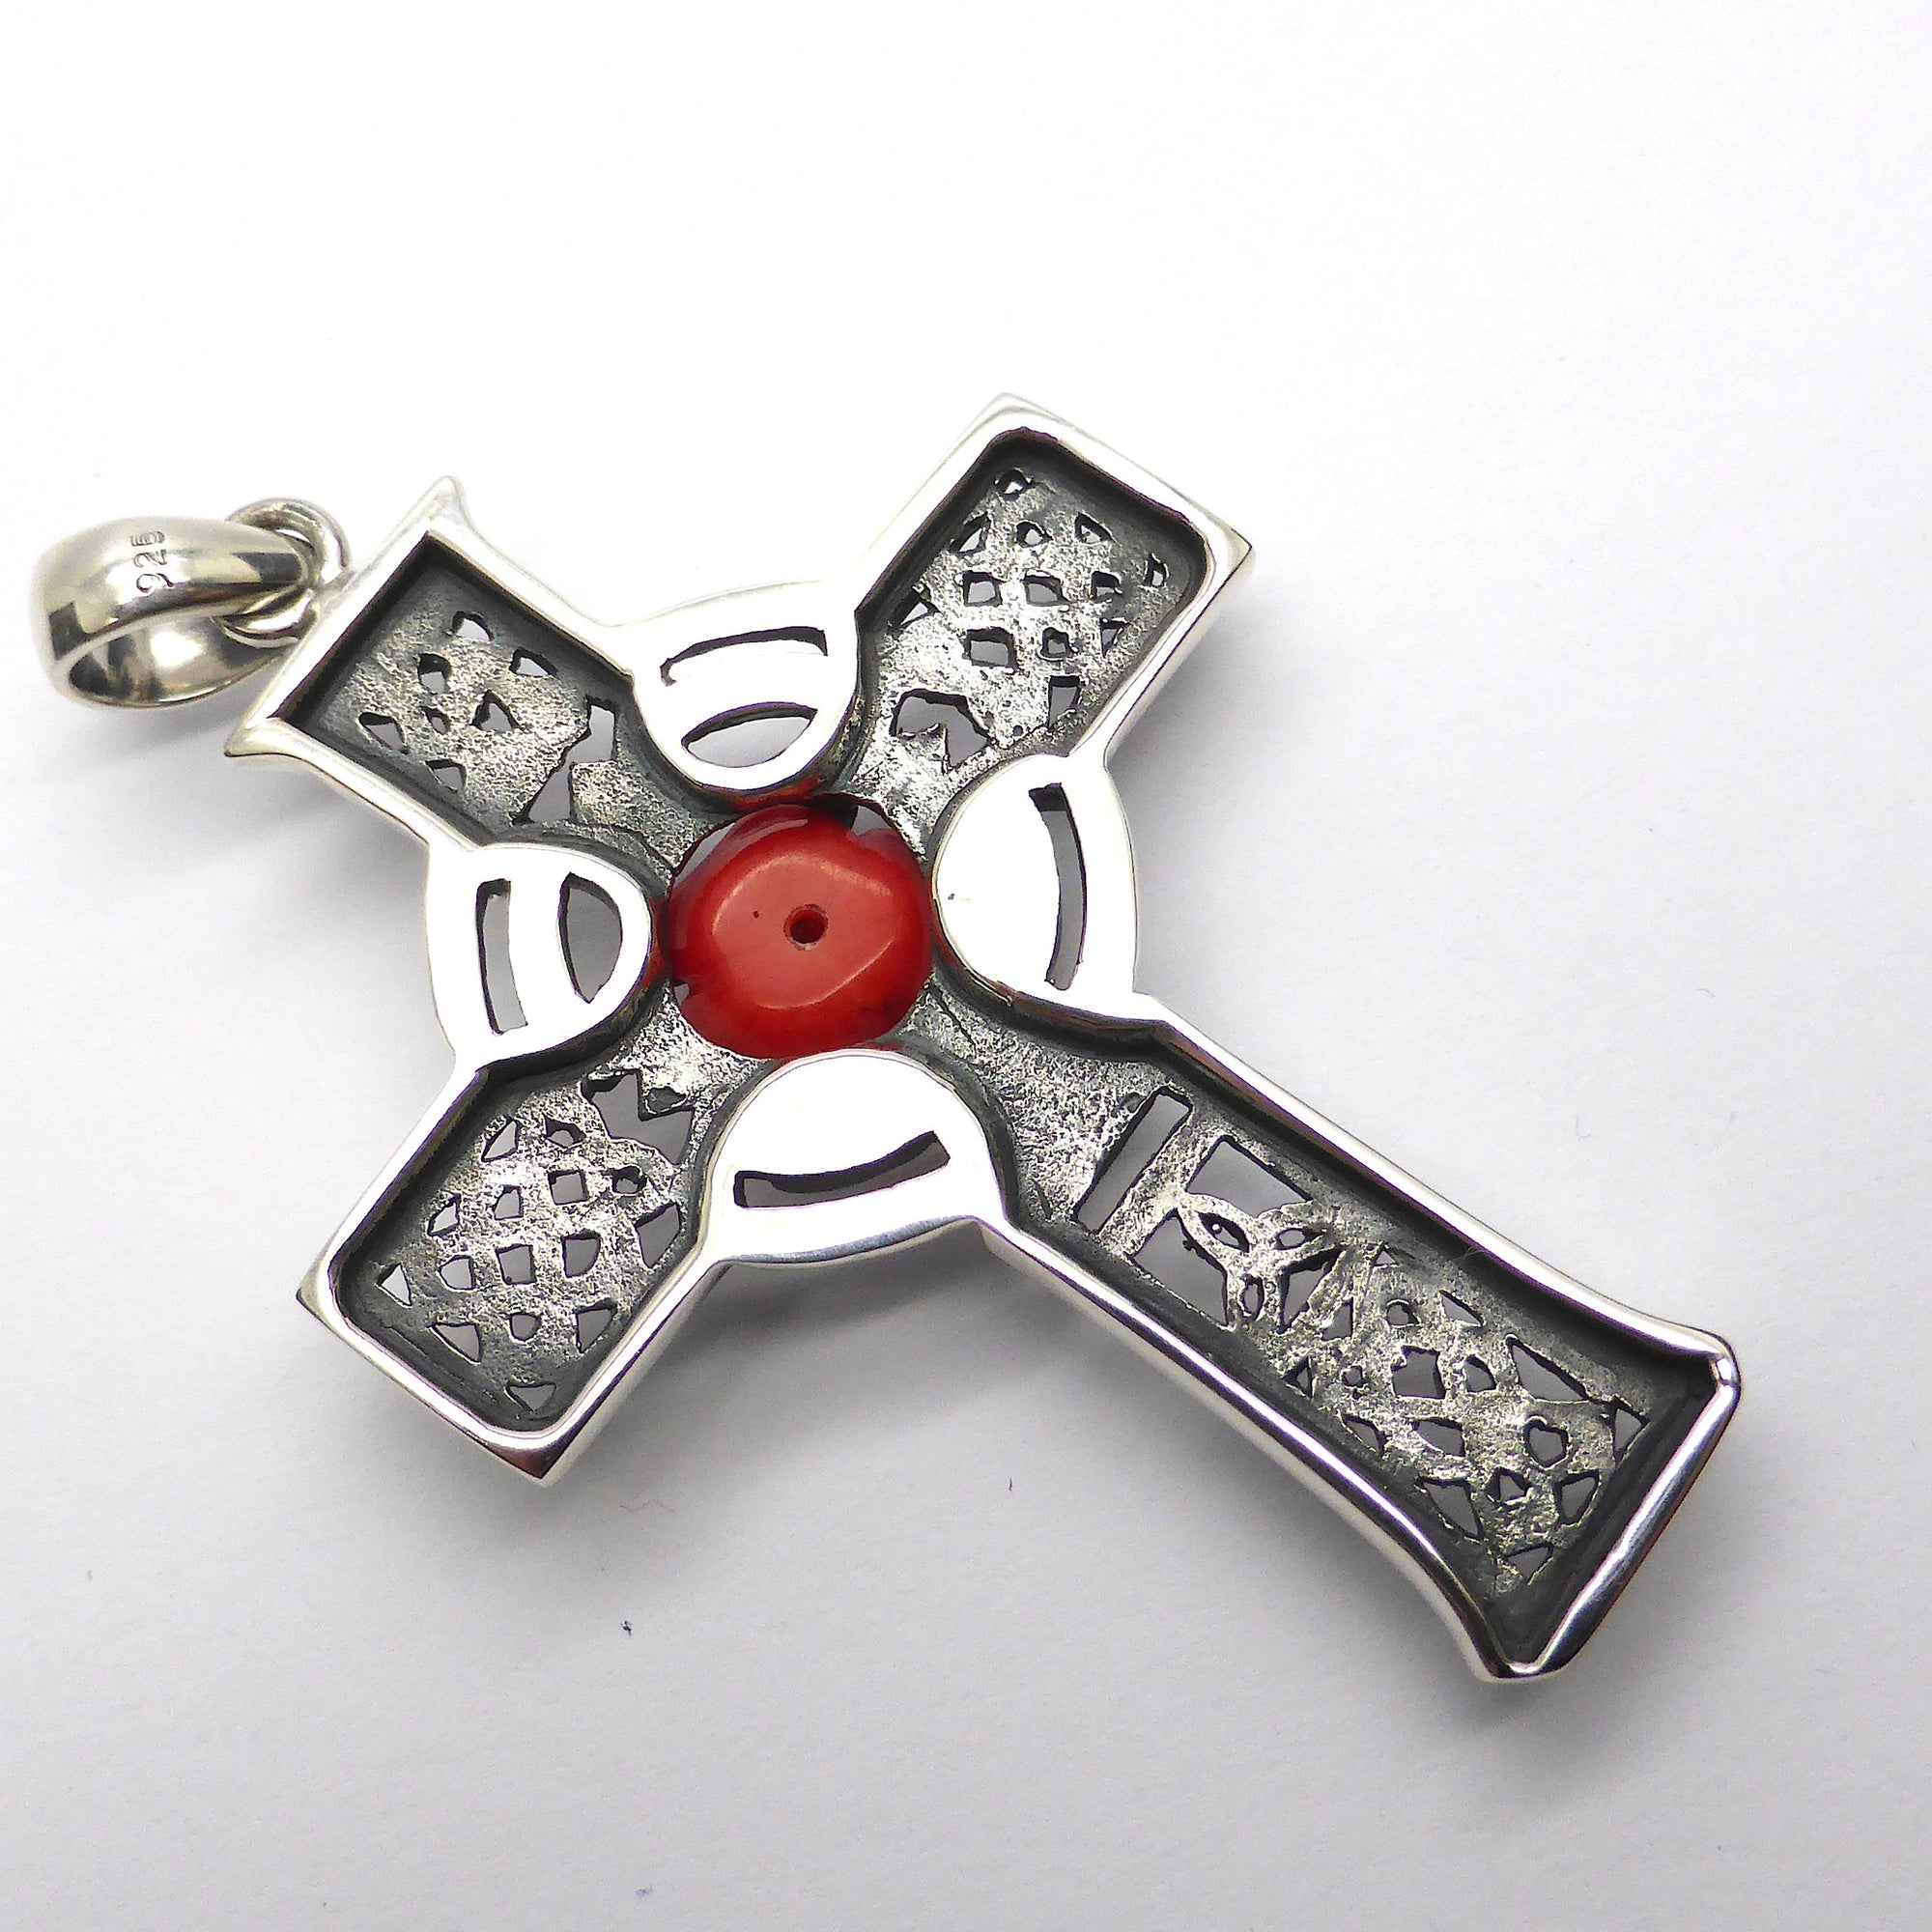 Pendant celtic cross red coral rose 925 sterling silver crystal majestic celtic rosy cross pendant in 925 sterling silver rose hand carved from natural red mozeypictures Image collections